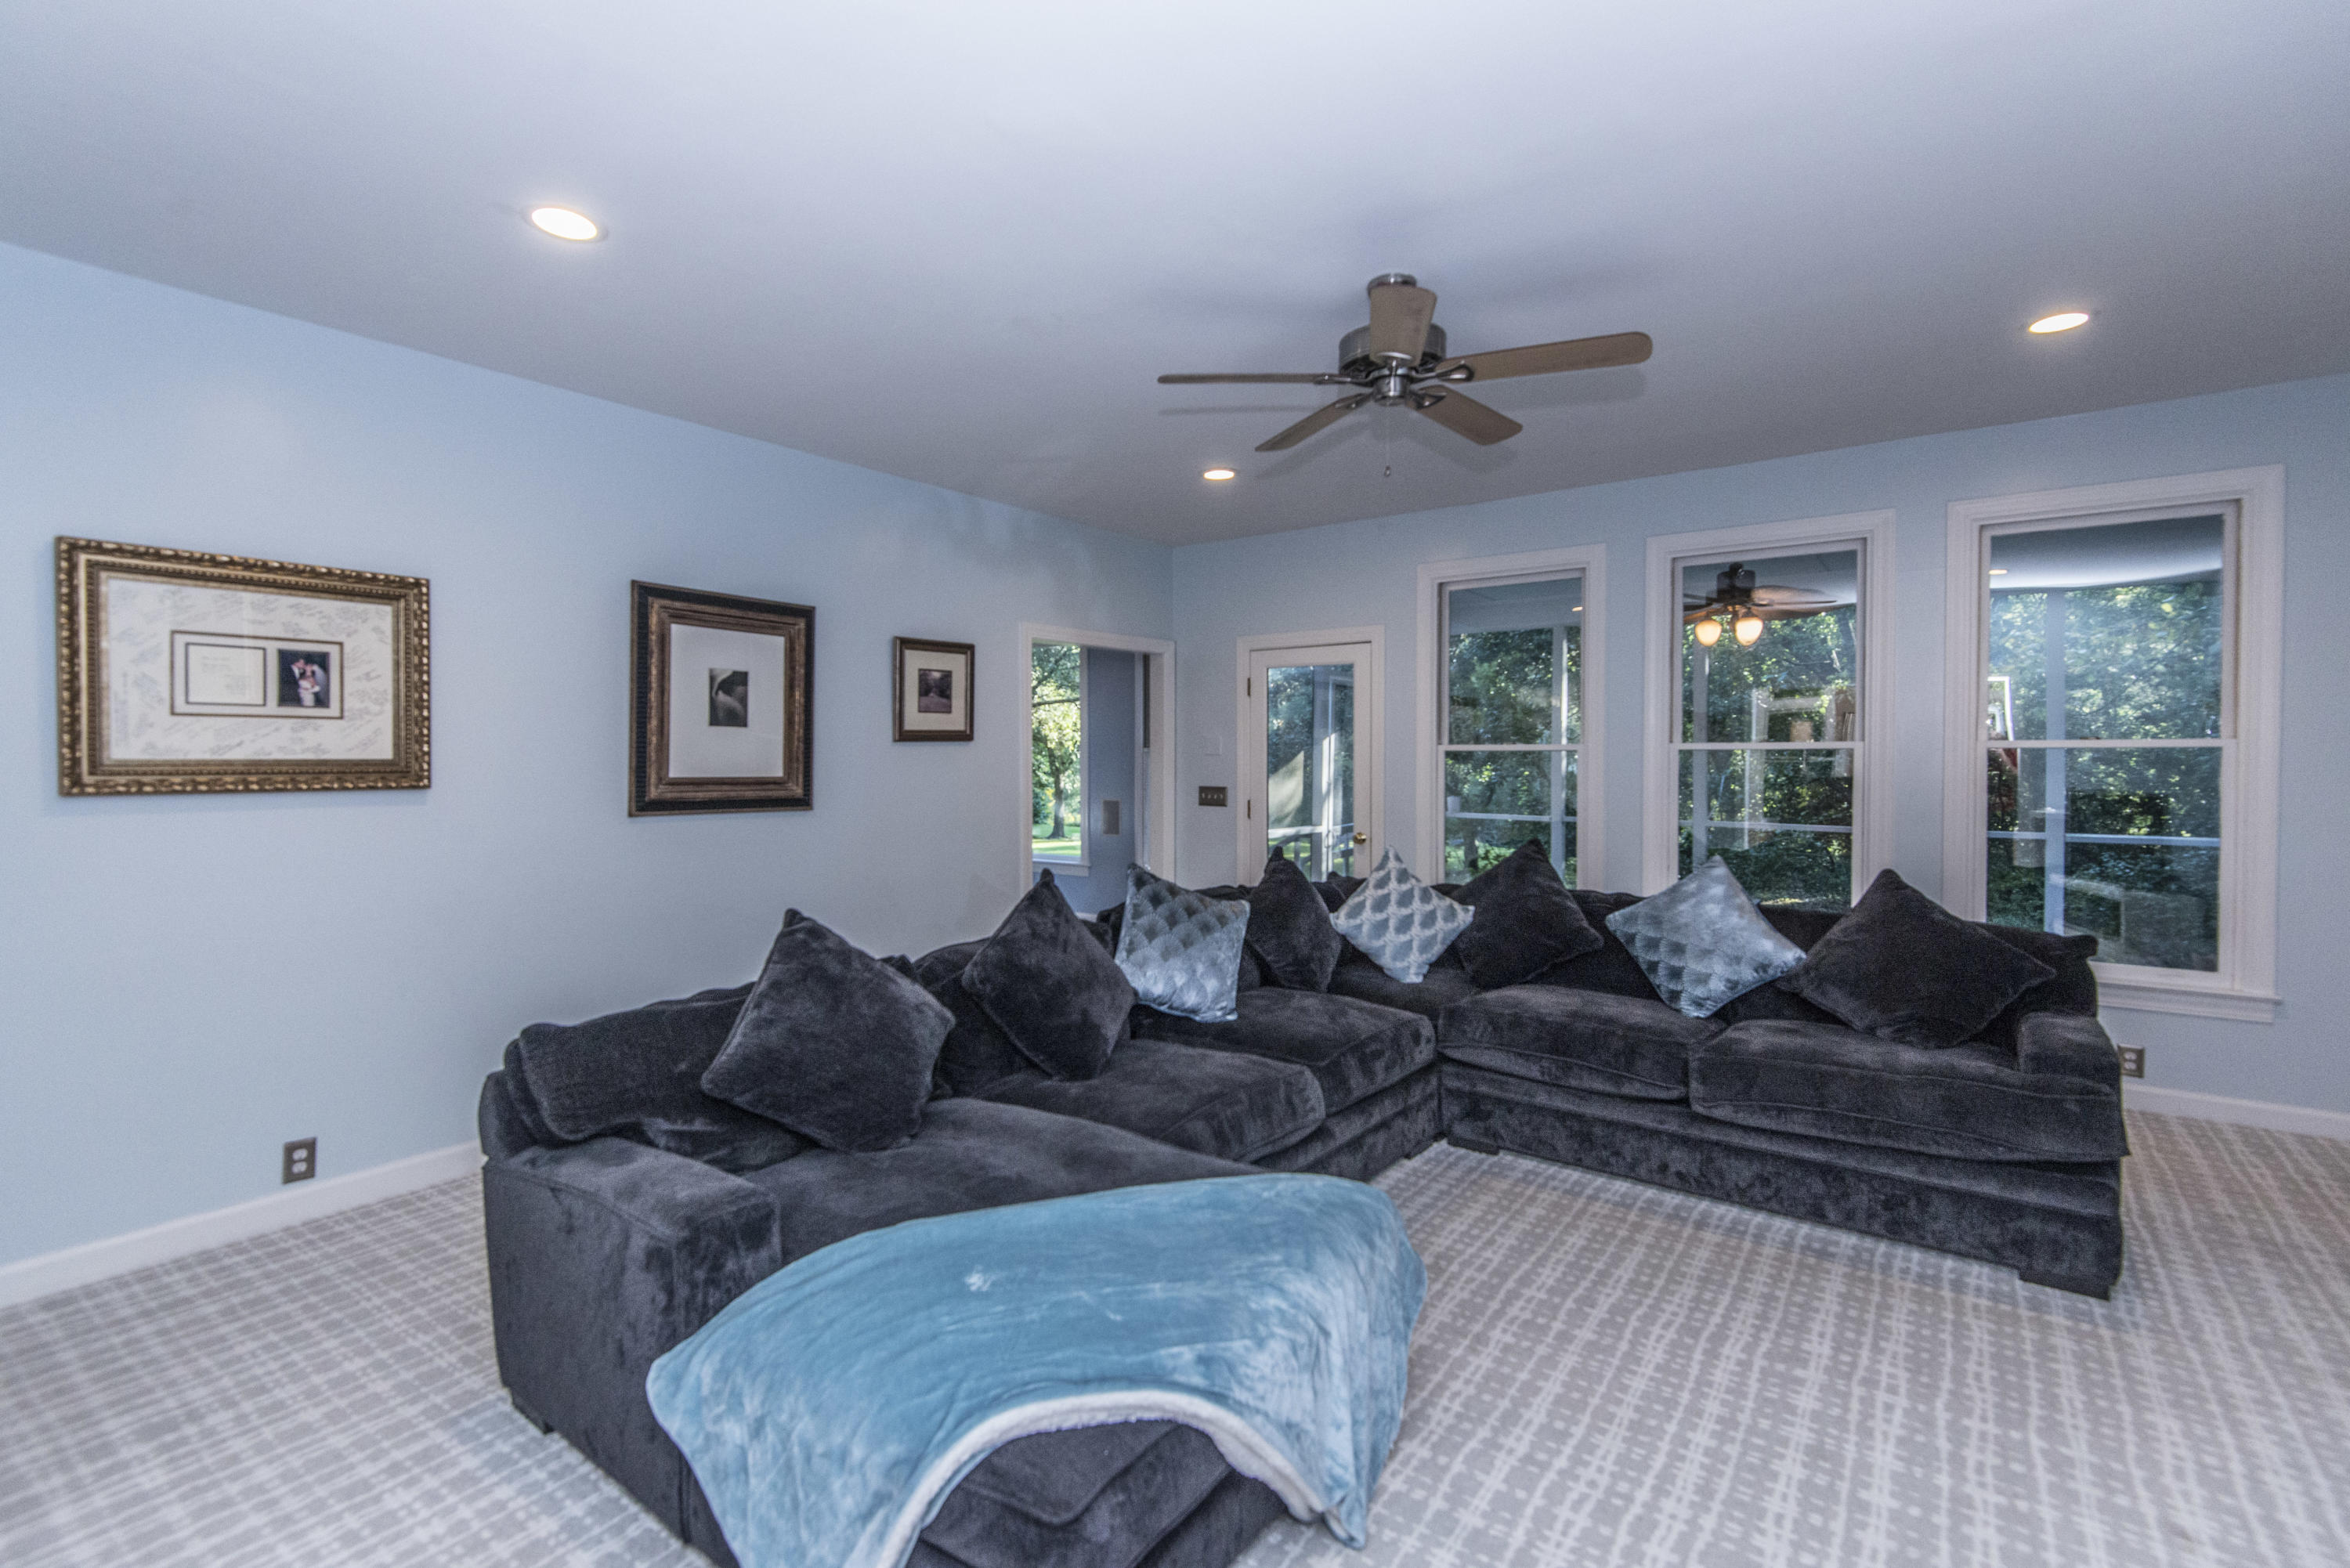 Maclaura Hall Homes For Sale - 3232 Hagerty, Charleston, SC - 40